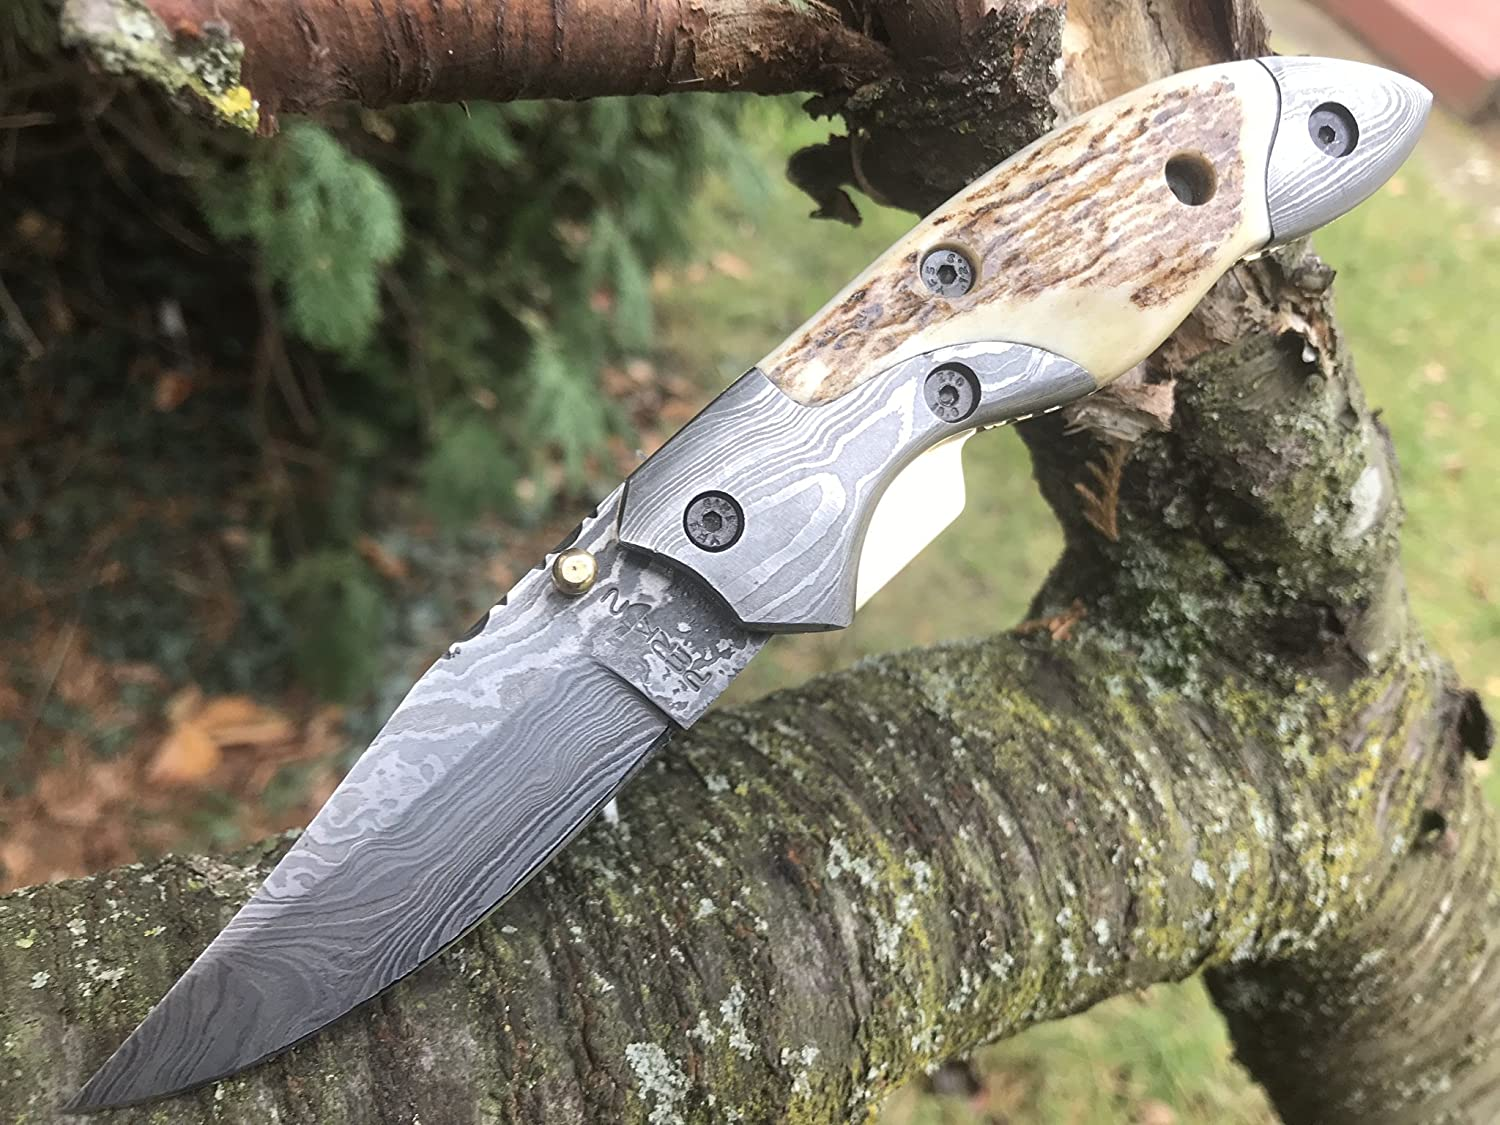 Perkin – Handmade Damascus Pocket Knife – Beautiful Folding Knife